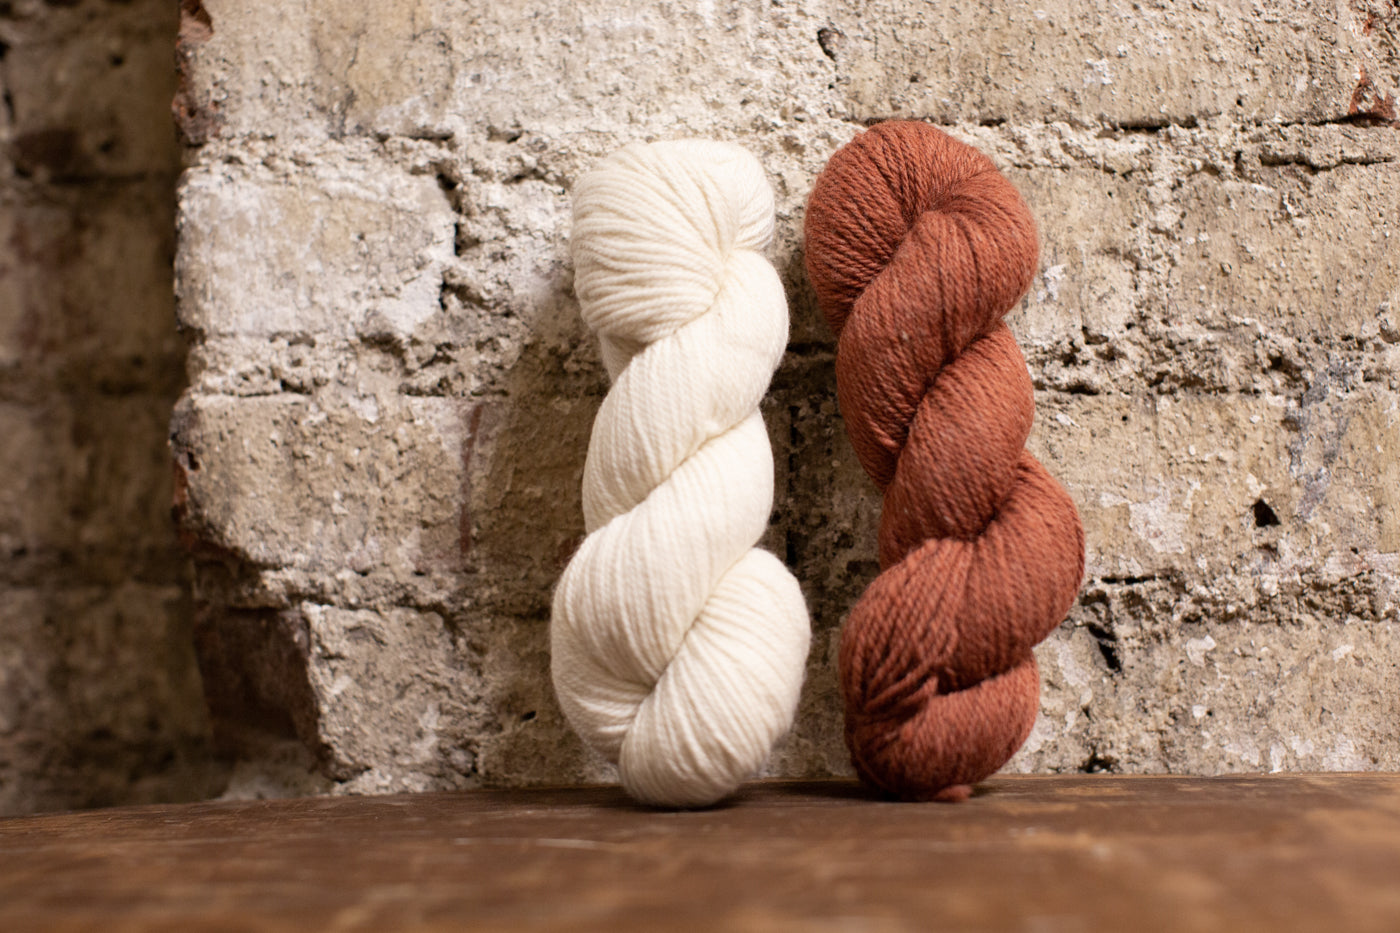 White yarn and muted red yarn leaning against a white wash brick wall.